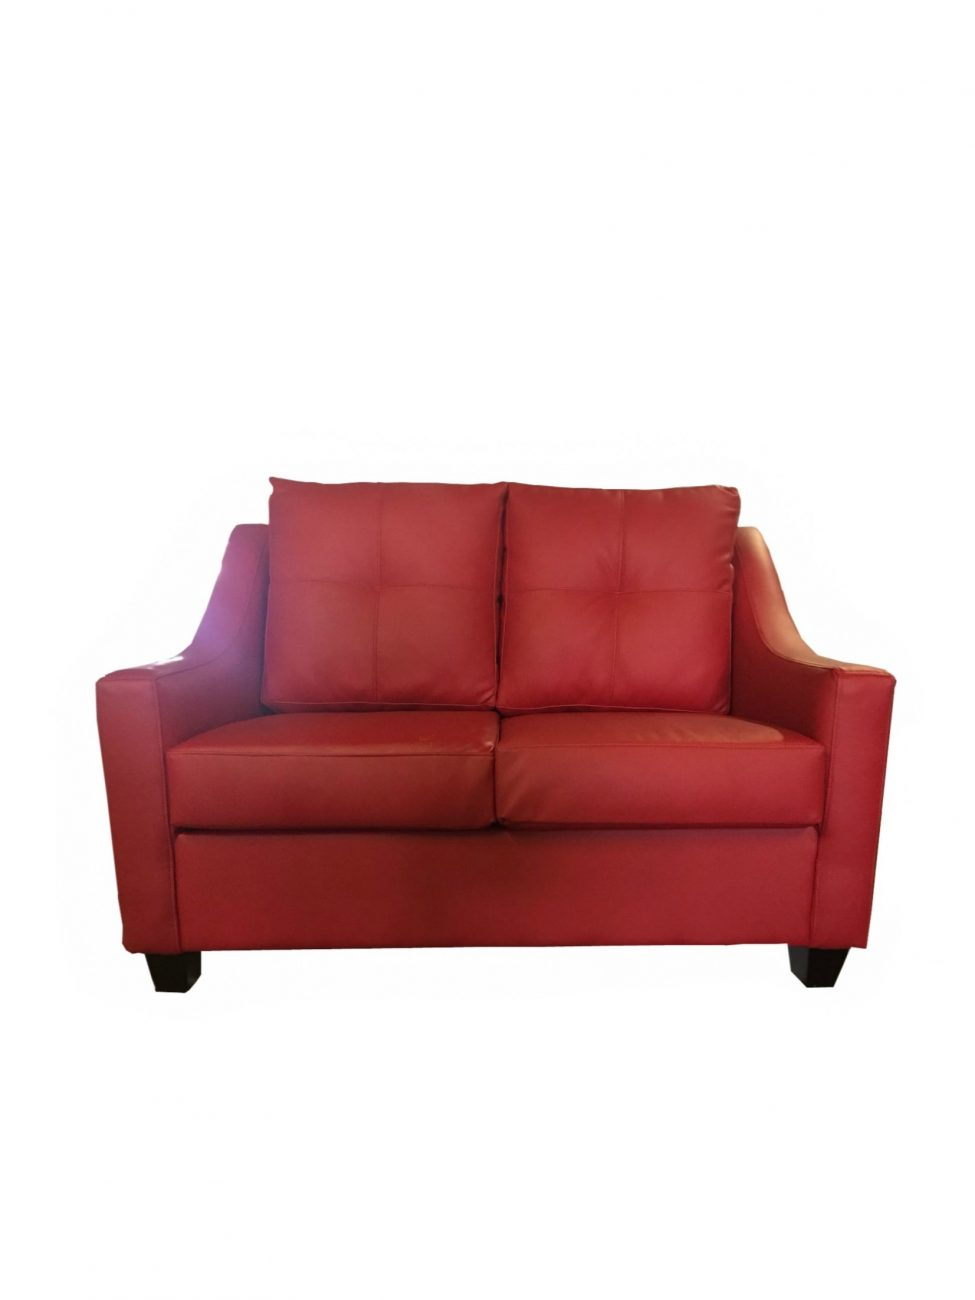 Loveseat Red 1 Web